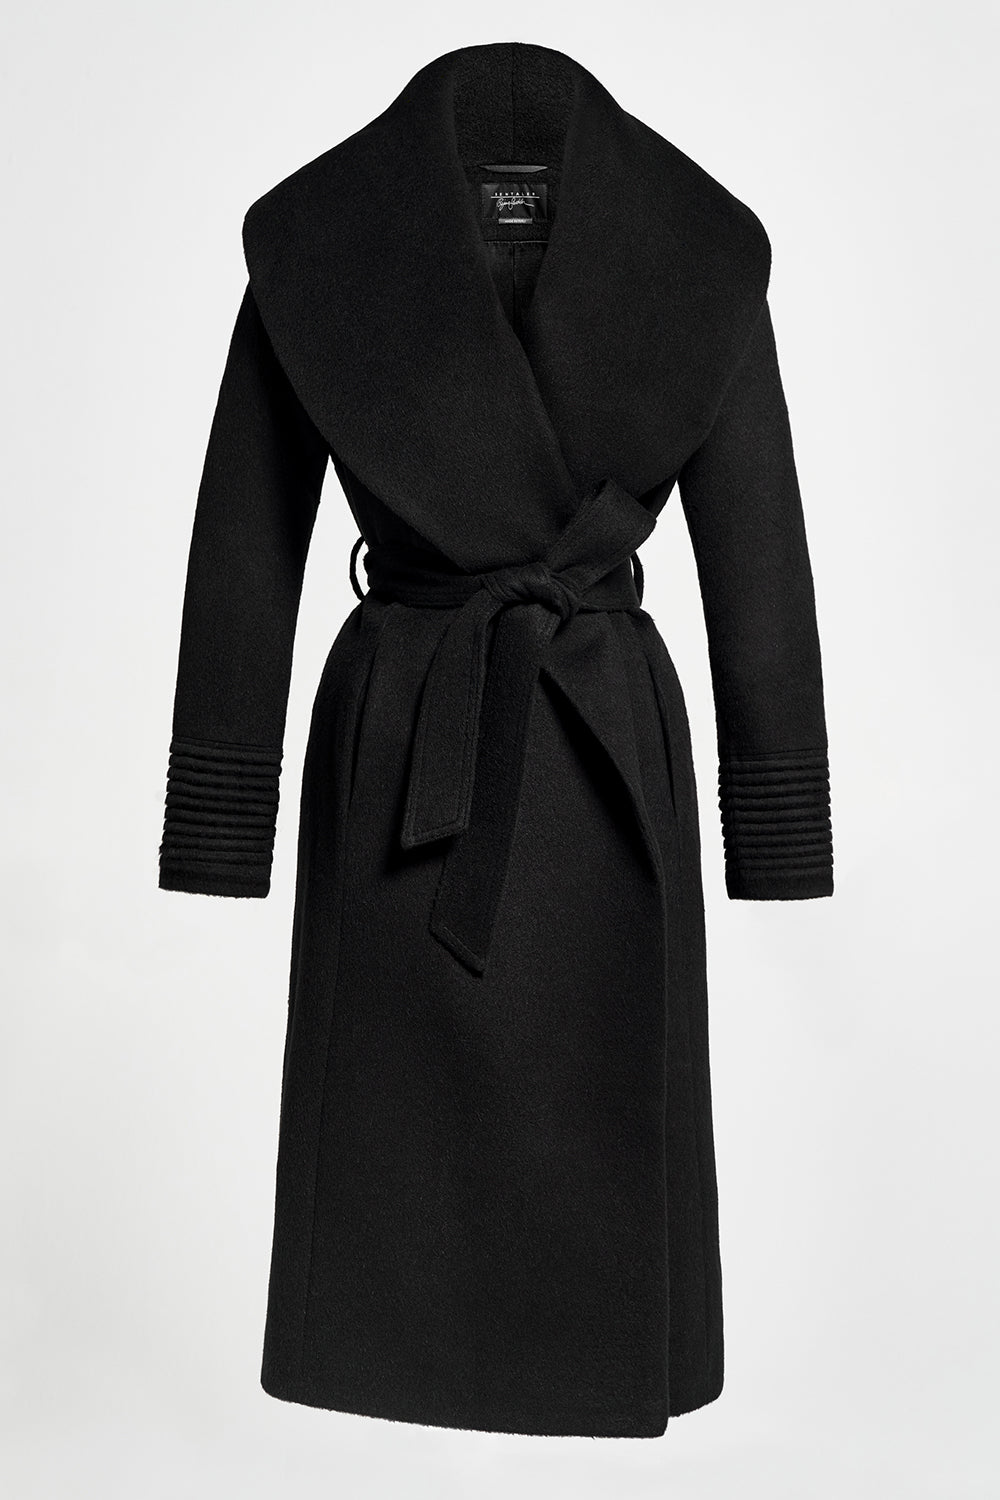 Sentaler Long Wide Shawl Collar Wrap Coat featured in Baby Alpaca and available in Black. Seen off model.